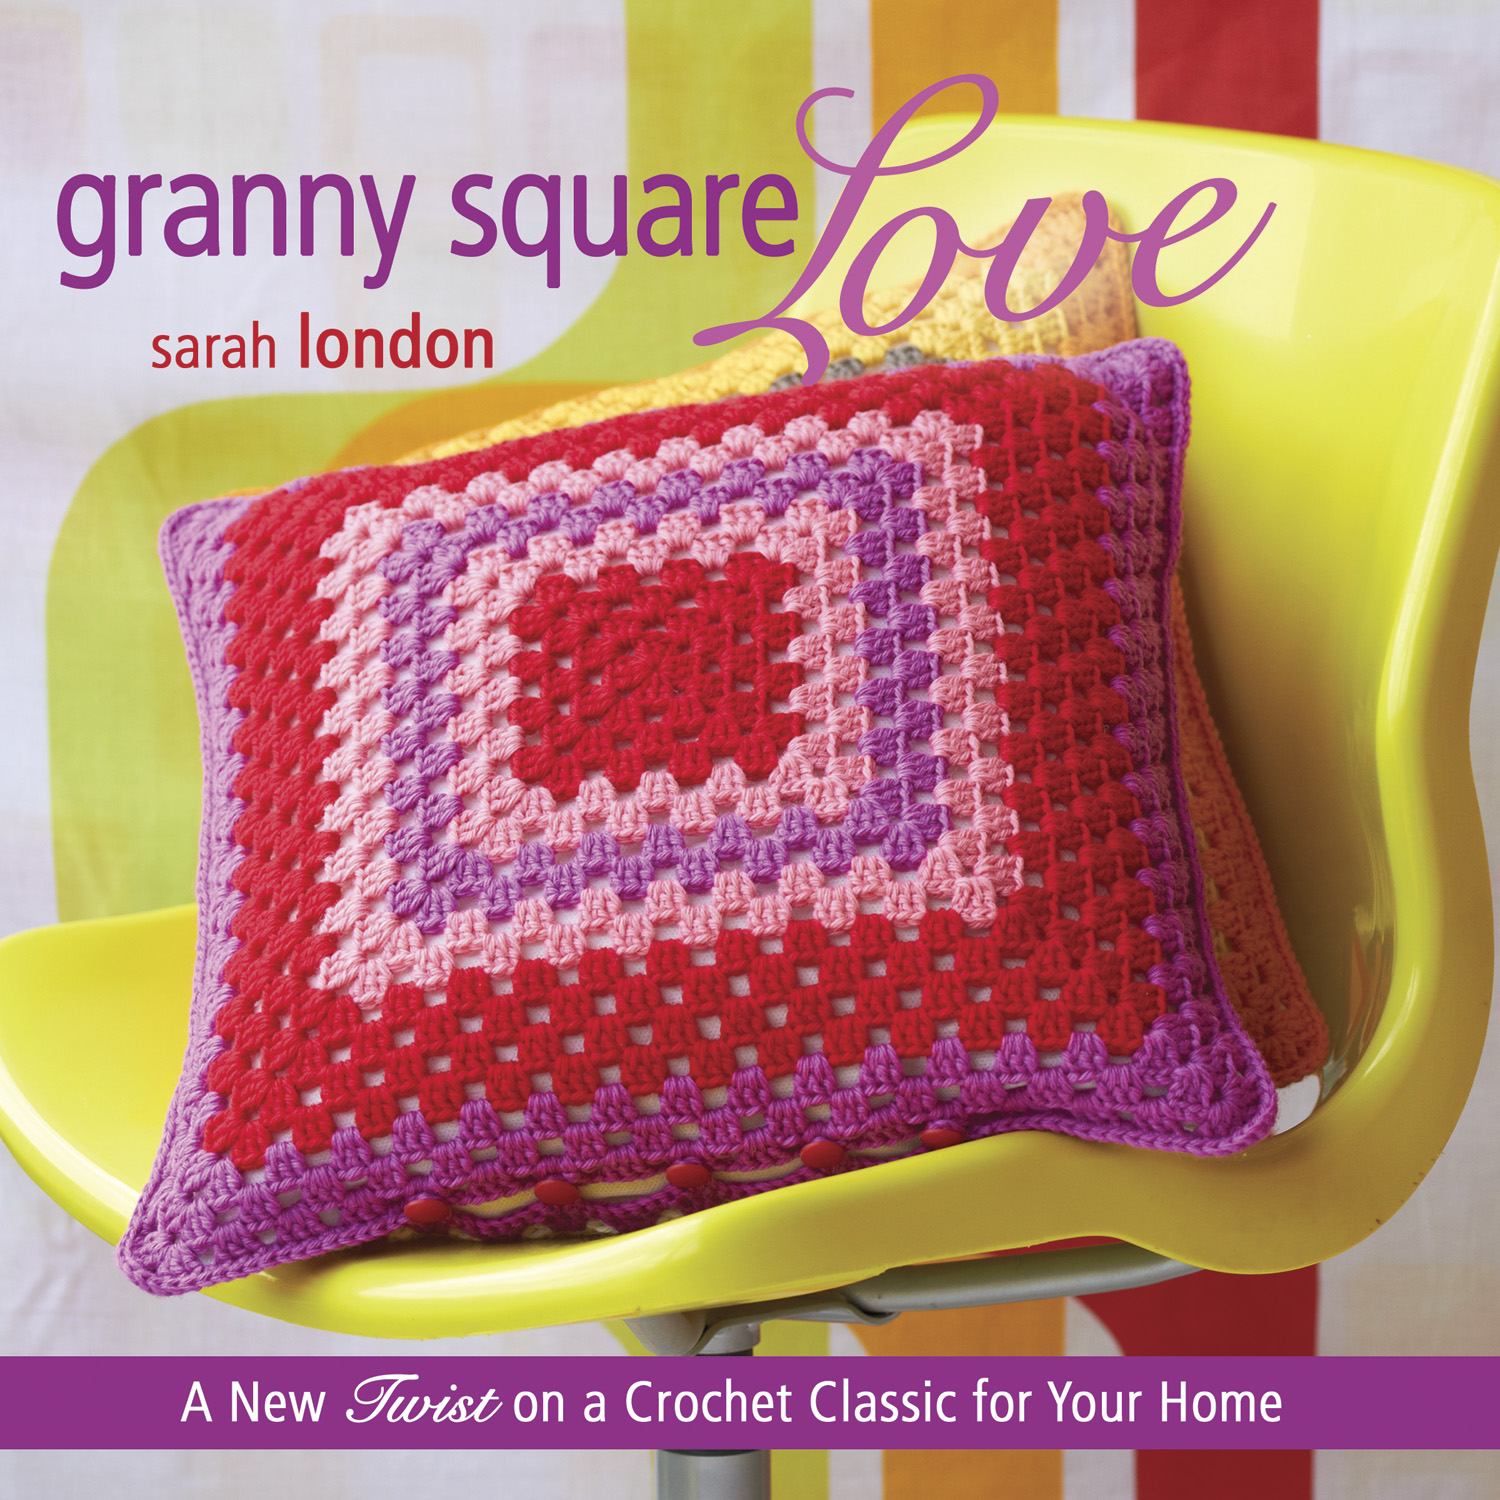 Crochet Books : Cute Crochet Chat: Granny Square LOVE review and GIVEAWAY!